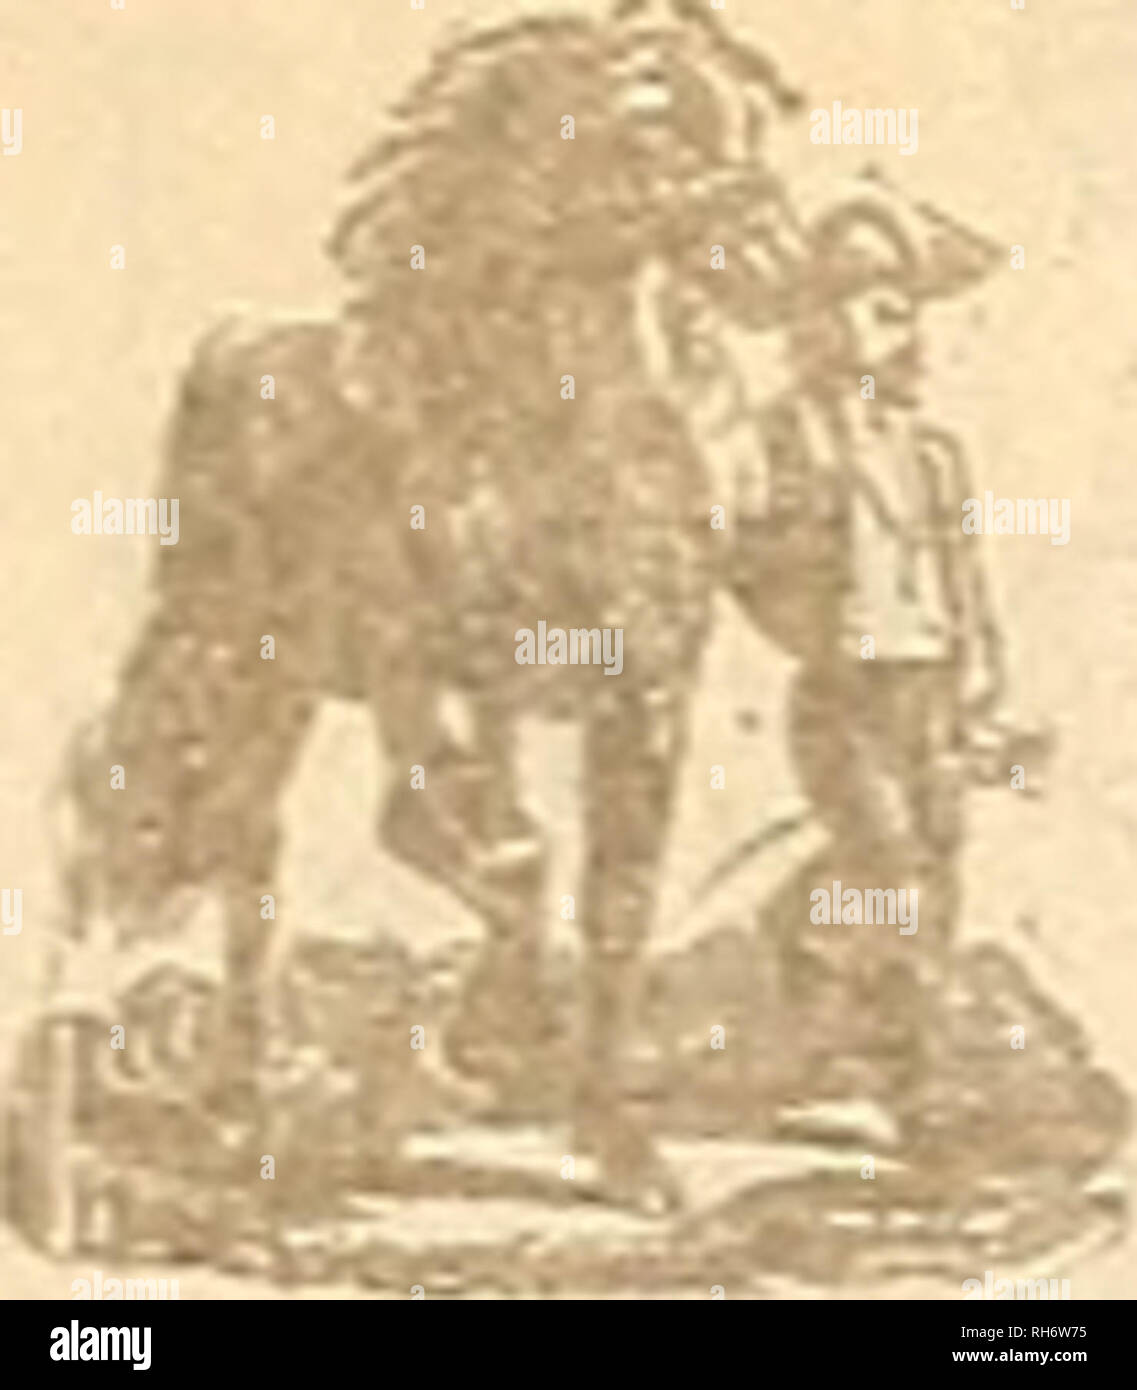 ". Breeder and sportsman. Horses. 12 ©He gveeftev cmb &povi*nicm [June 17, 1905 The Good Draft Horse. U a horse is e'lorl ribbed he if light i hie middle and is nearl; ' P00r feede. ""'g1' ,0 contain sufficient food I fr0U1 one meal to an en put into hard work he ger <Â«l.'6ed °""1 appea. â¢;! uorae sel- dom weighs well, and weight in a draft horse, if it comes from bone, sinew and moscle, goes a long way to determine his commercial value. When a horse ie well coupled together on top and has a short back be must have the length below from the point of the shoulder to the back o Stock Photo"